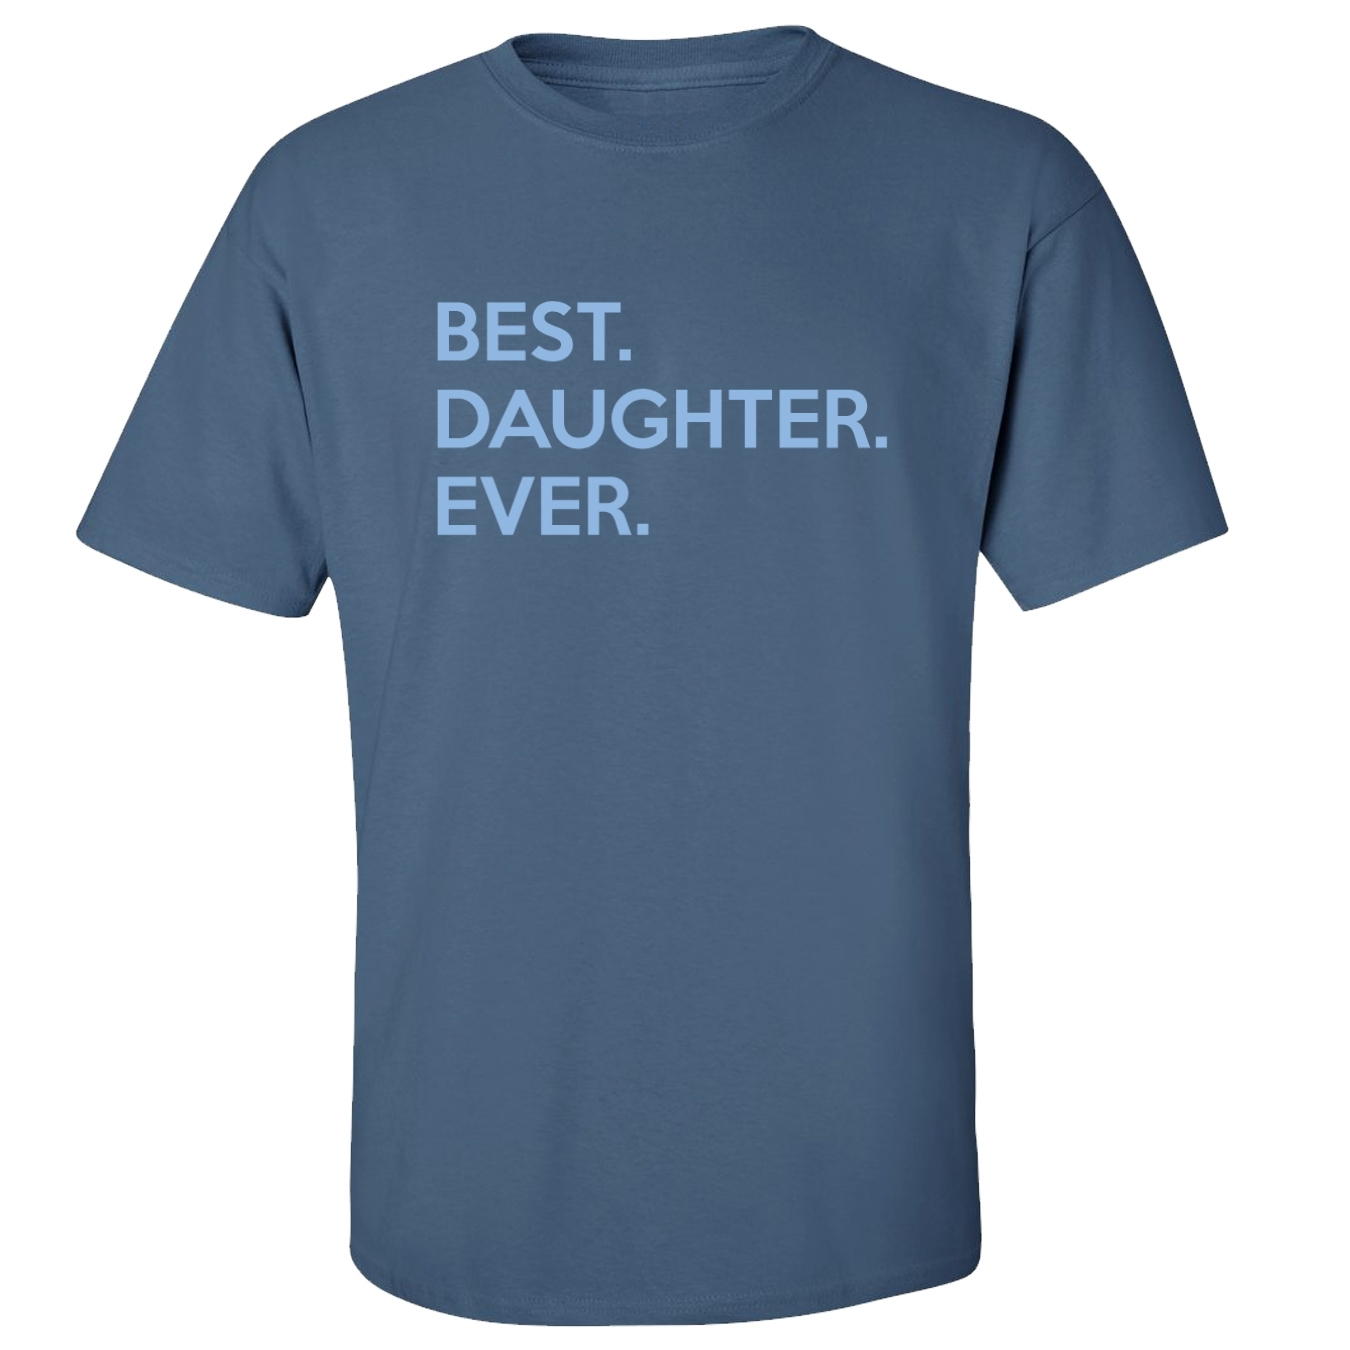 Mashed Clothing Best Daughter Ever Adult T-Shirt at Sears.com